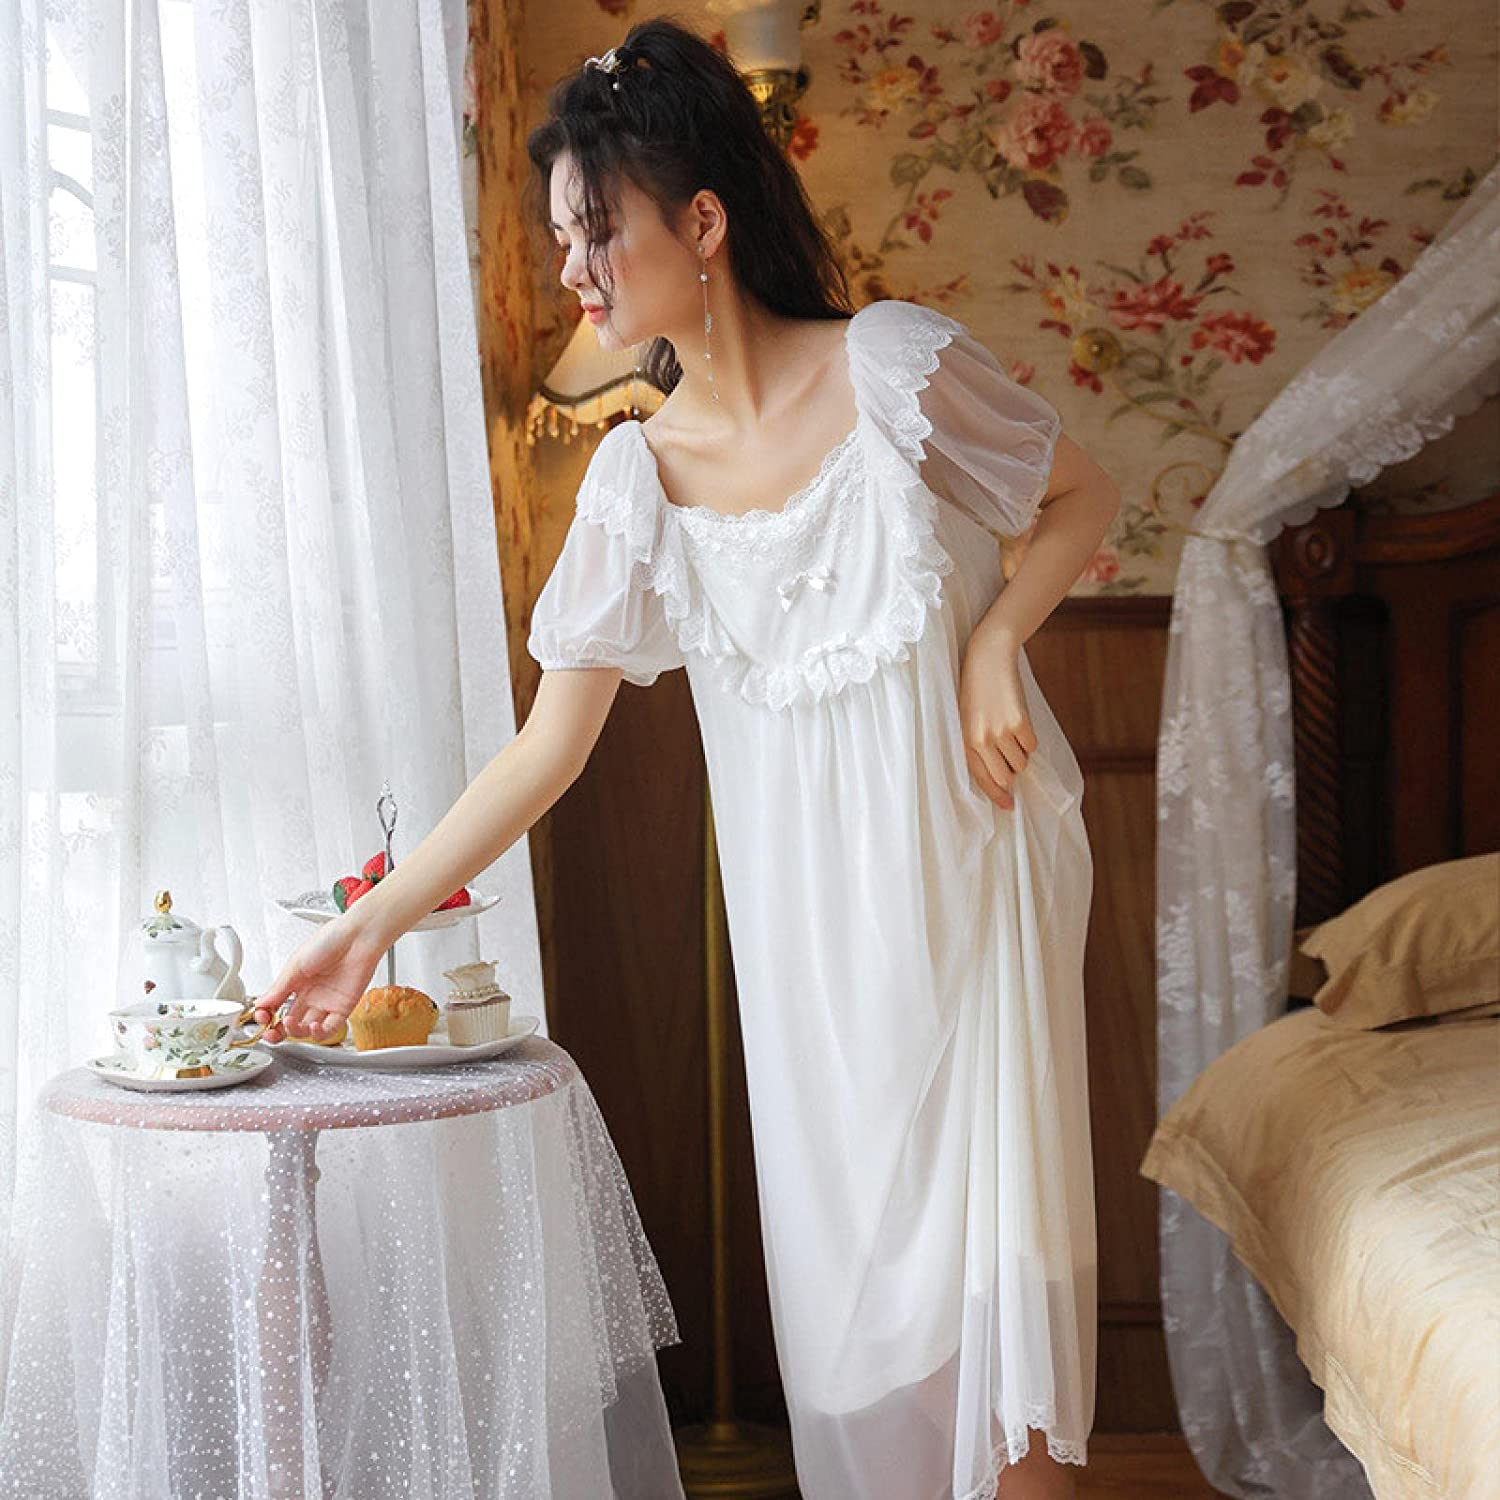 STJDM New Shipping Free Shipping Nightgown White Lace Night Dress Outlet sale feature P Vintage Women Nightwear